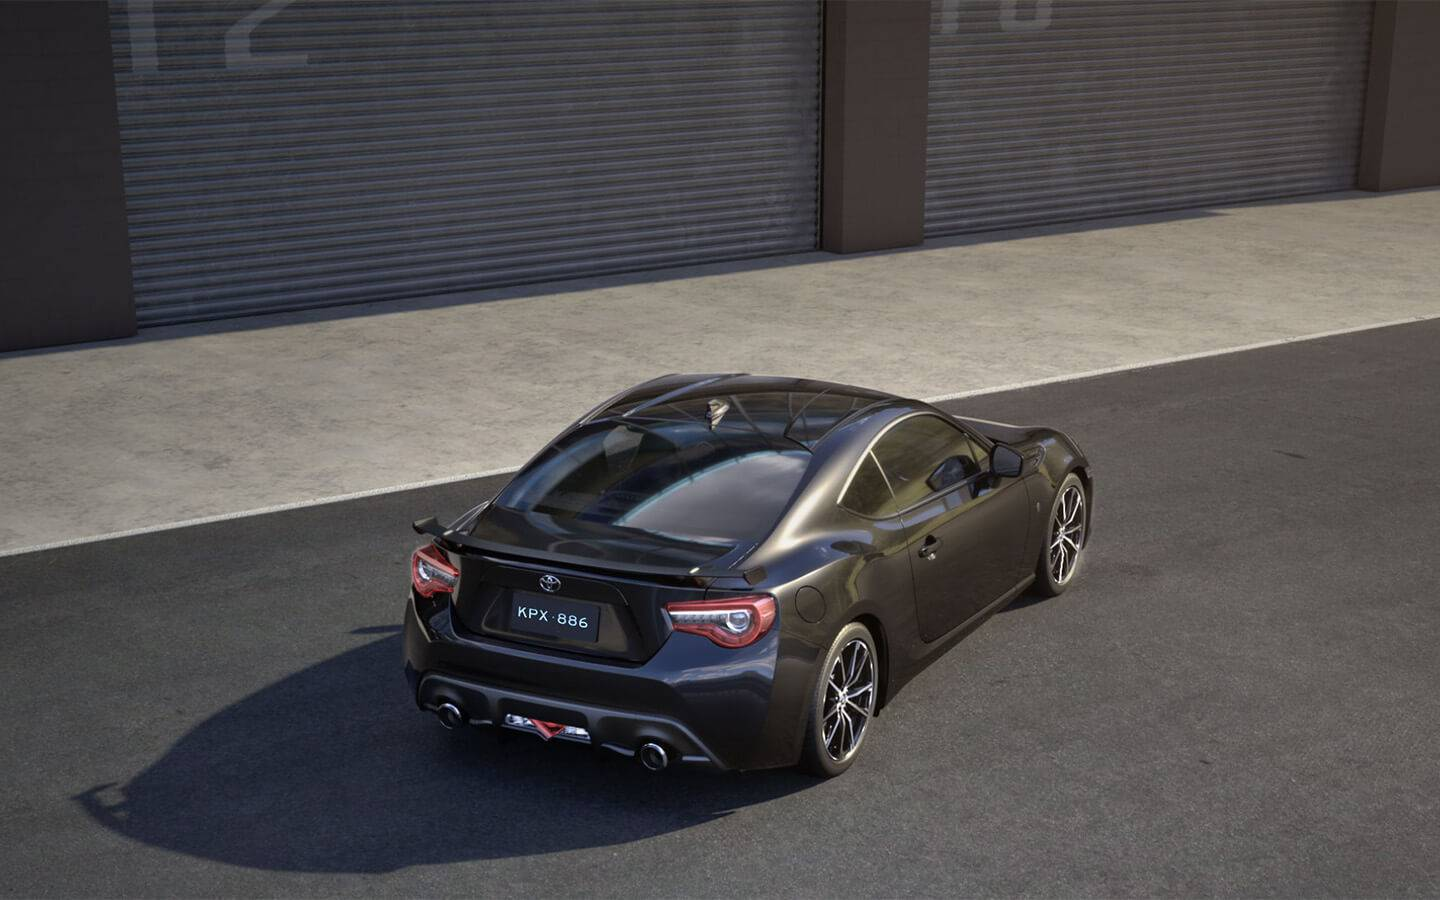 Toyota 86 Built for excitement